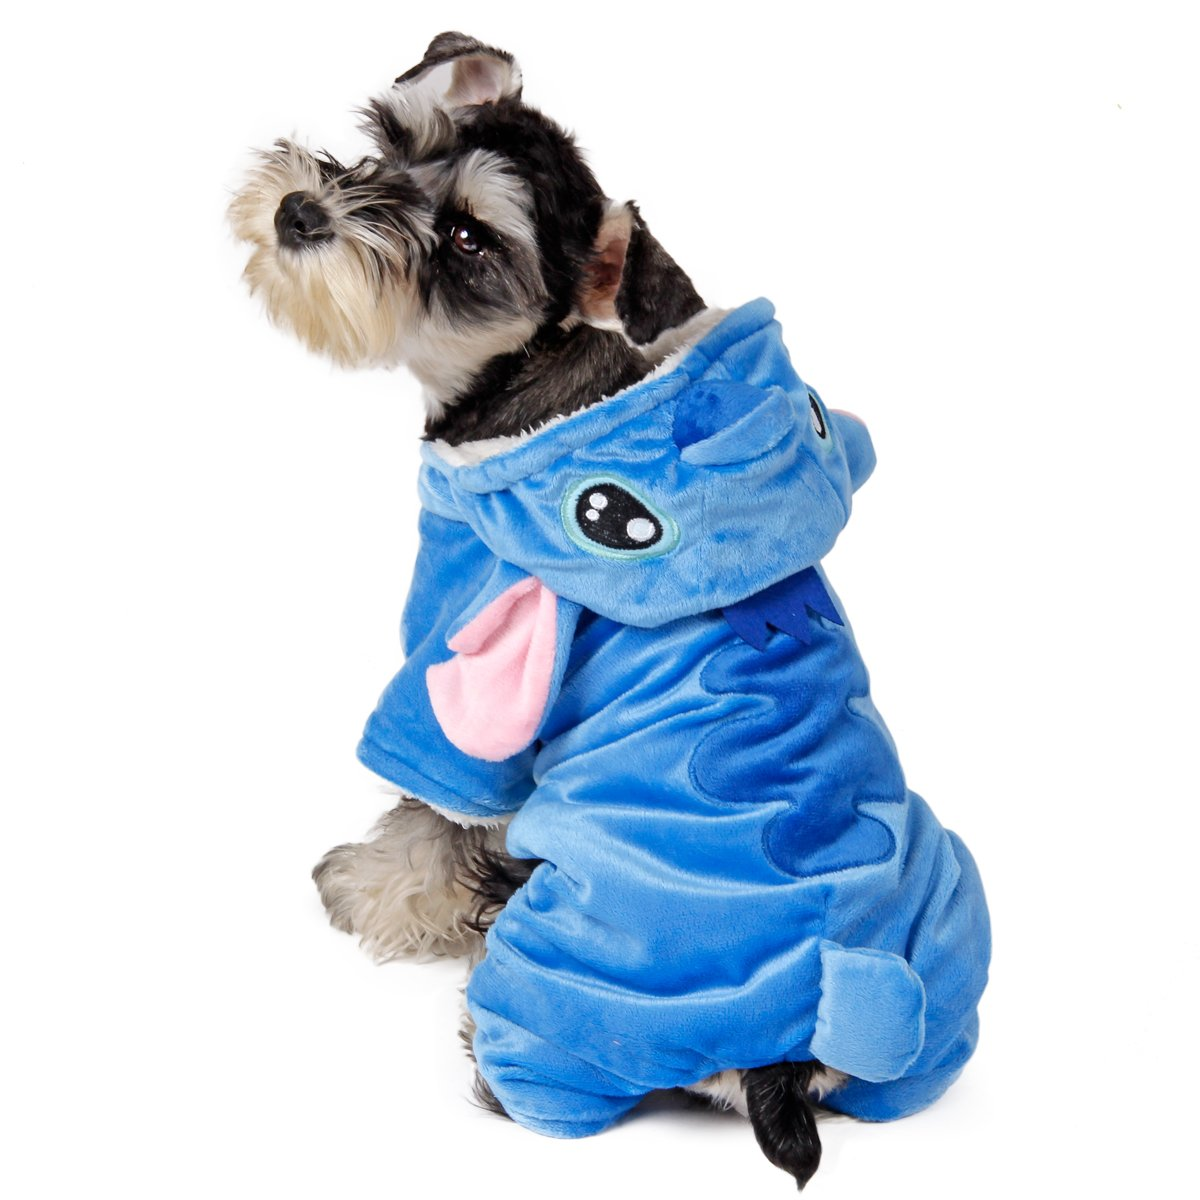 Speedy Pet Dog Clothes Cat Apparel Adorable Costume Double Layer Soft Wool Fabric and Fleece Size M